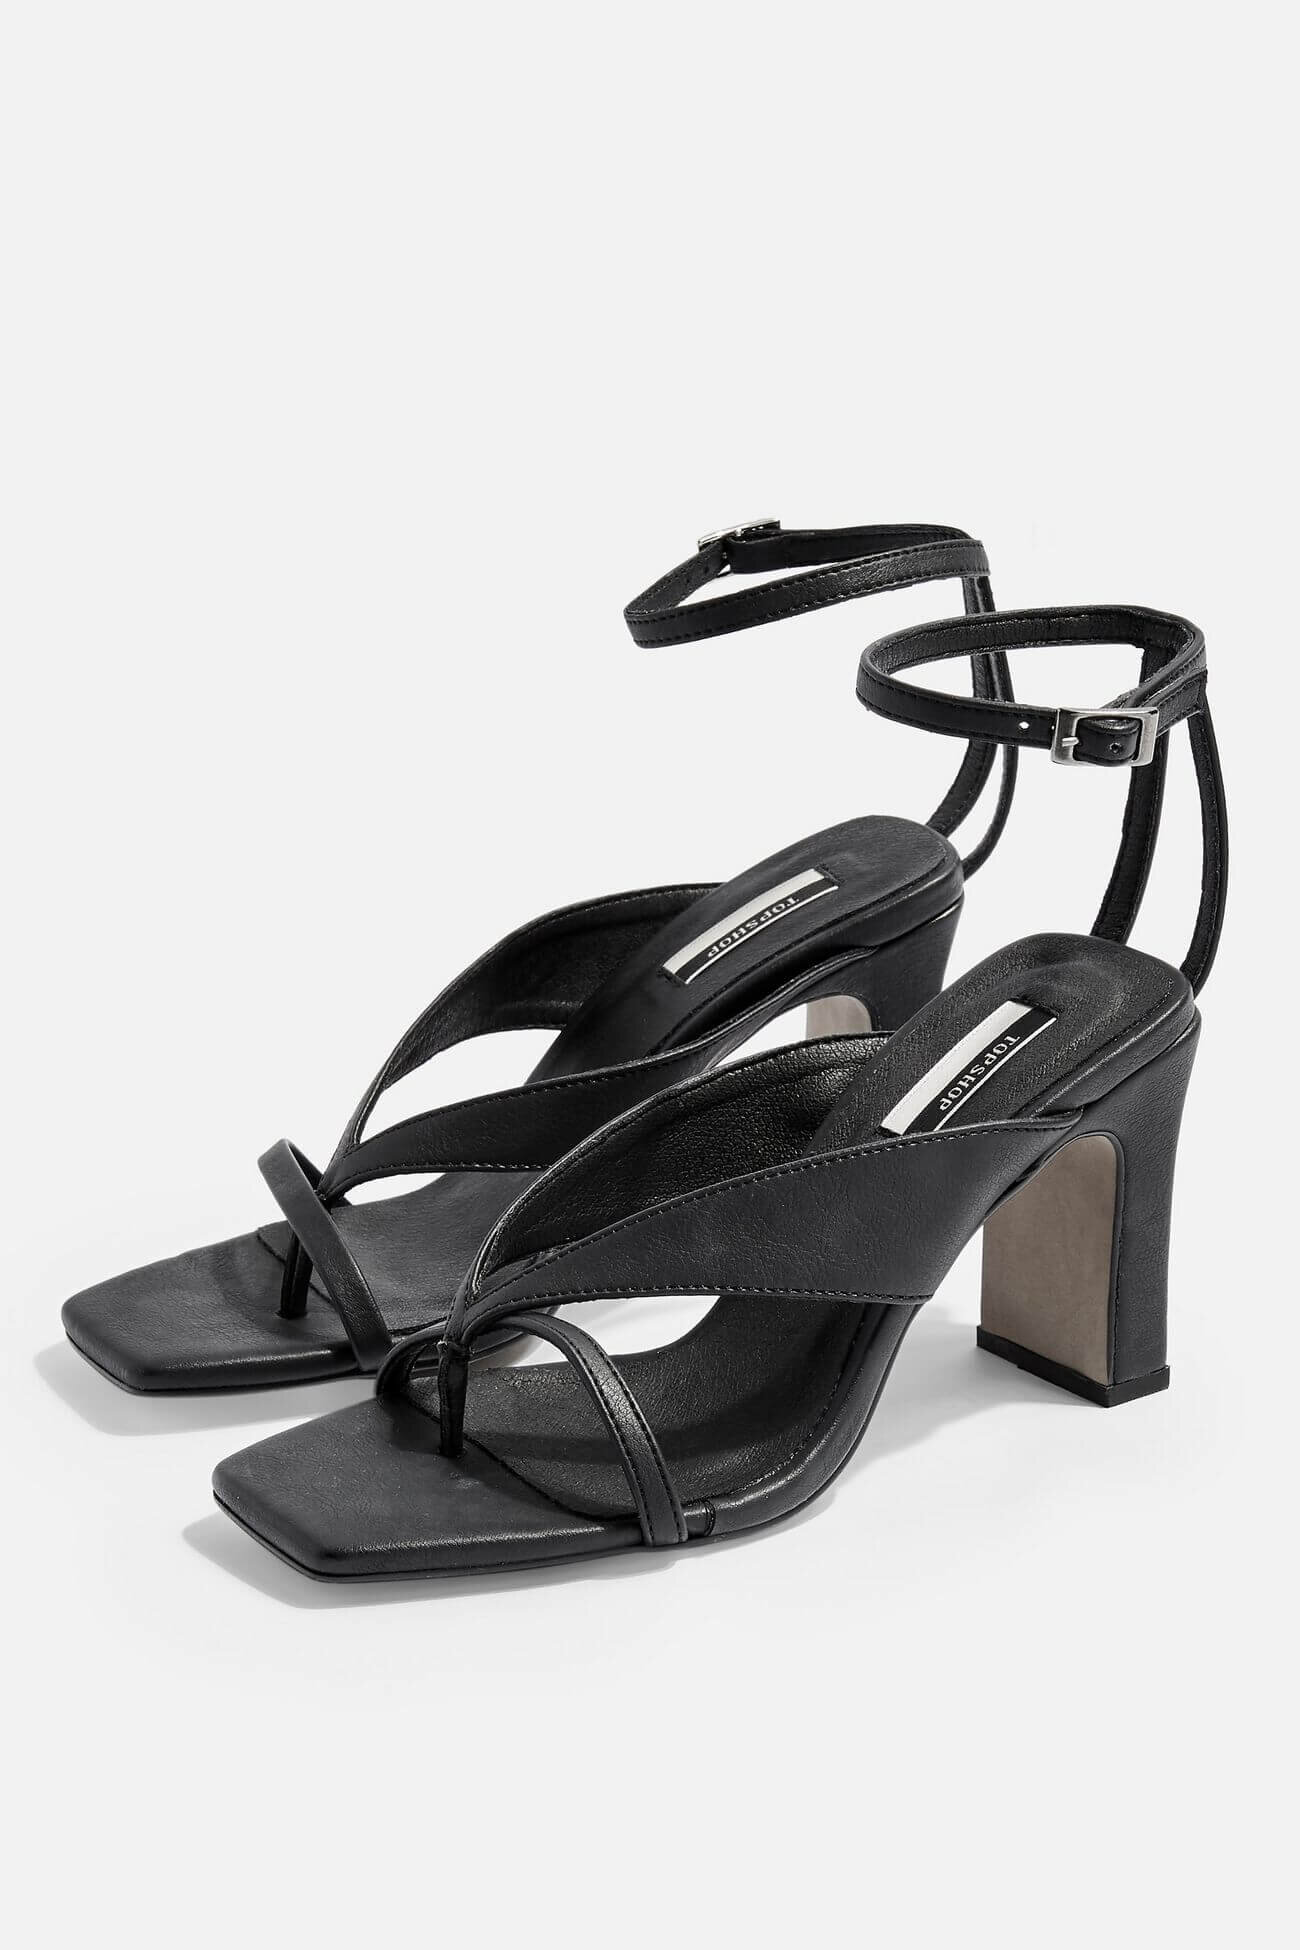 Vegan Black Strappy Sandals, $52, Topshop